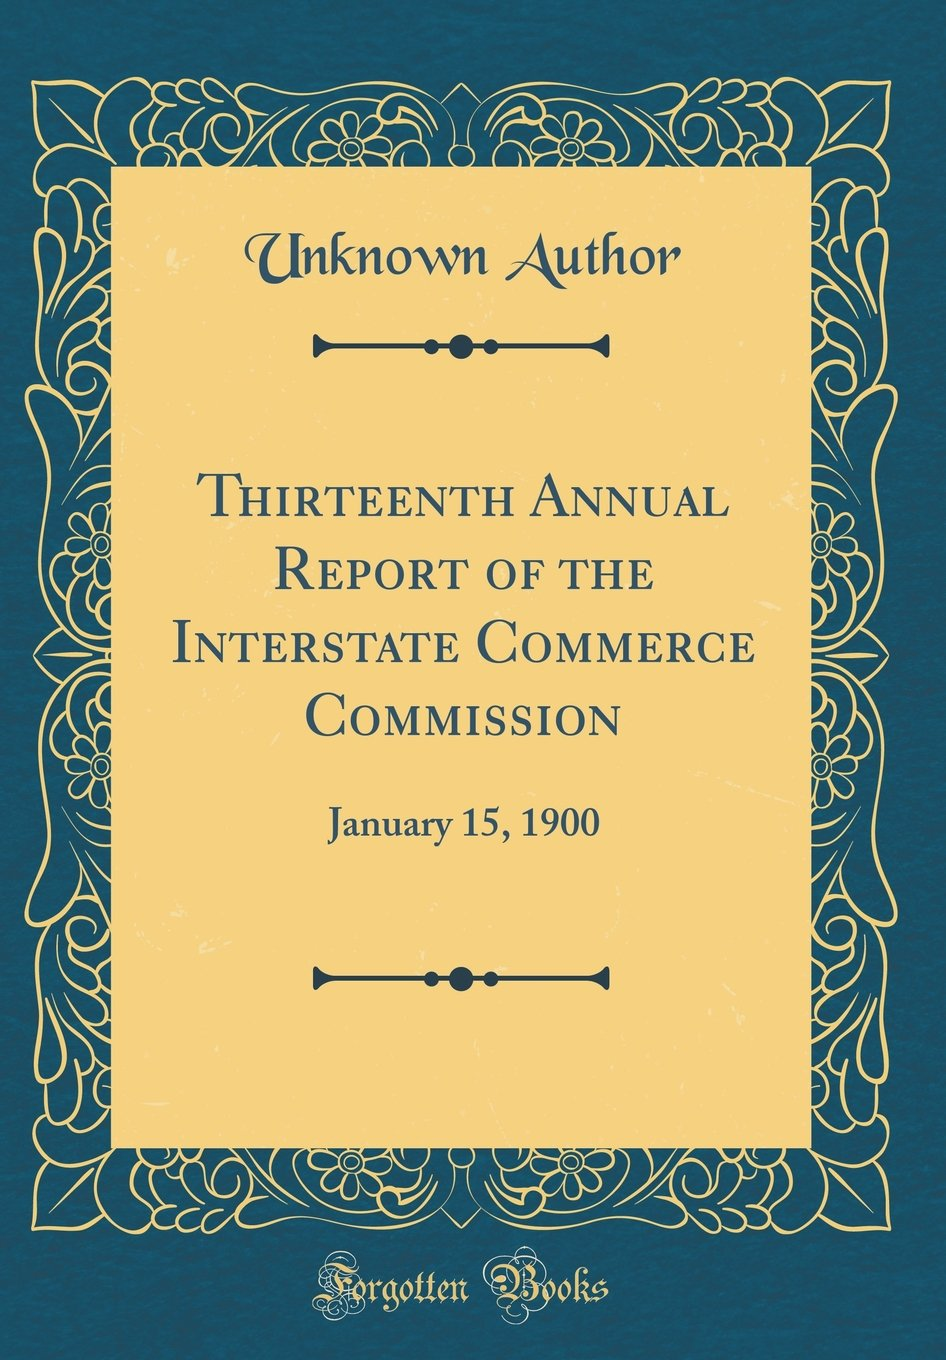 Thirteenth Annual Report of the Interstate Commerce Commission: January 15, 1900 (Classic Reprint) PDF